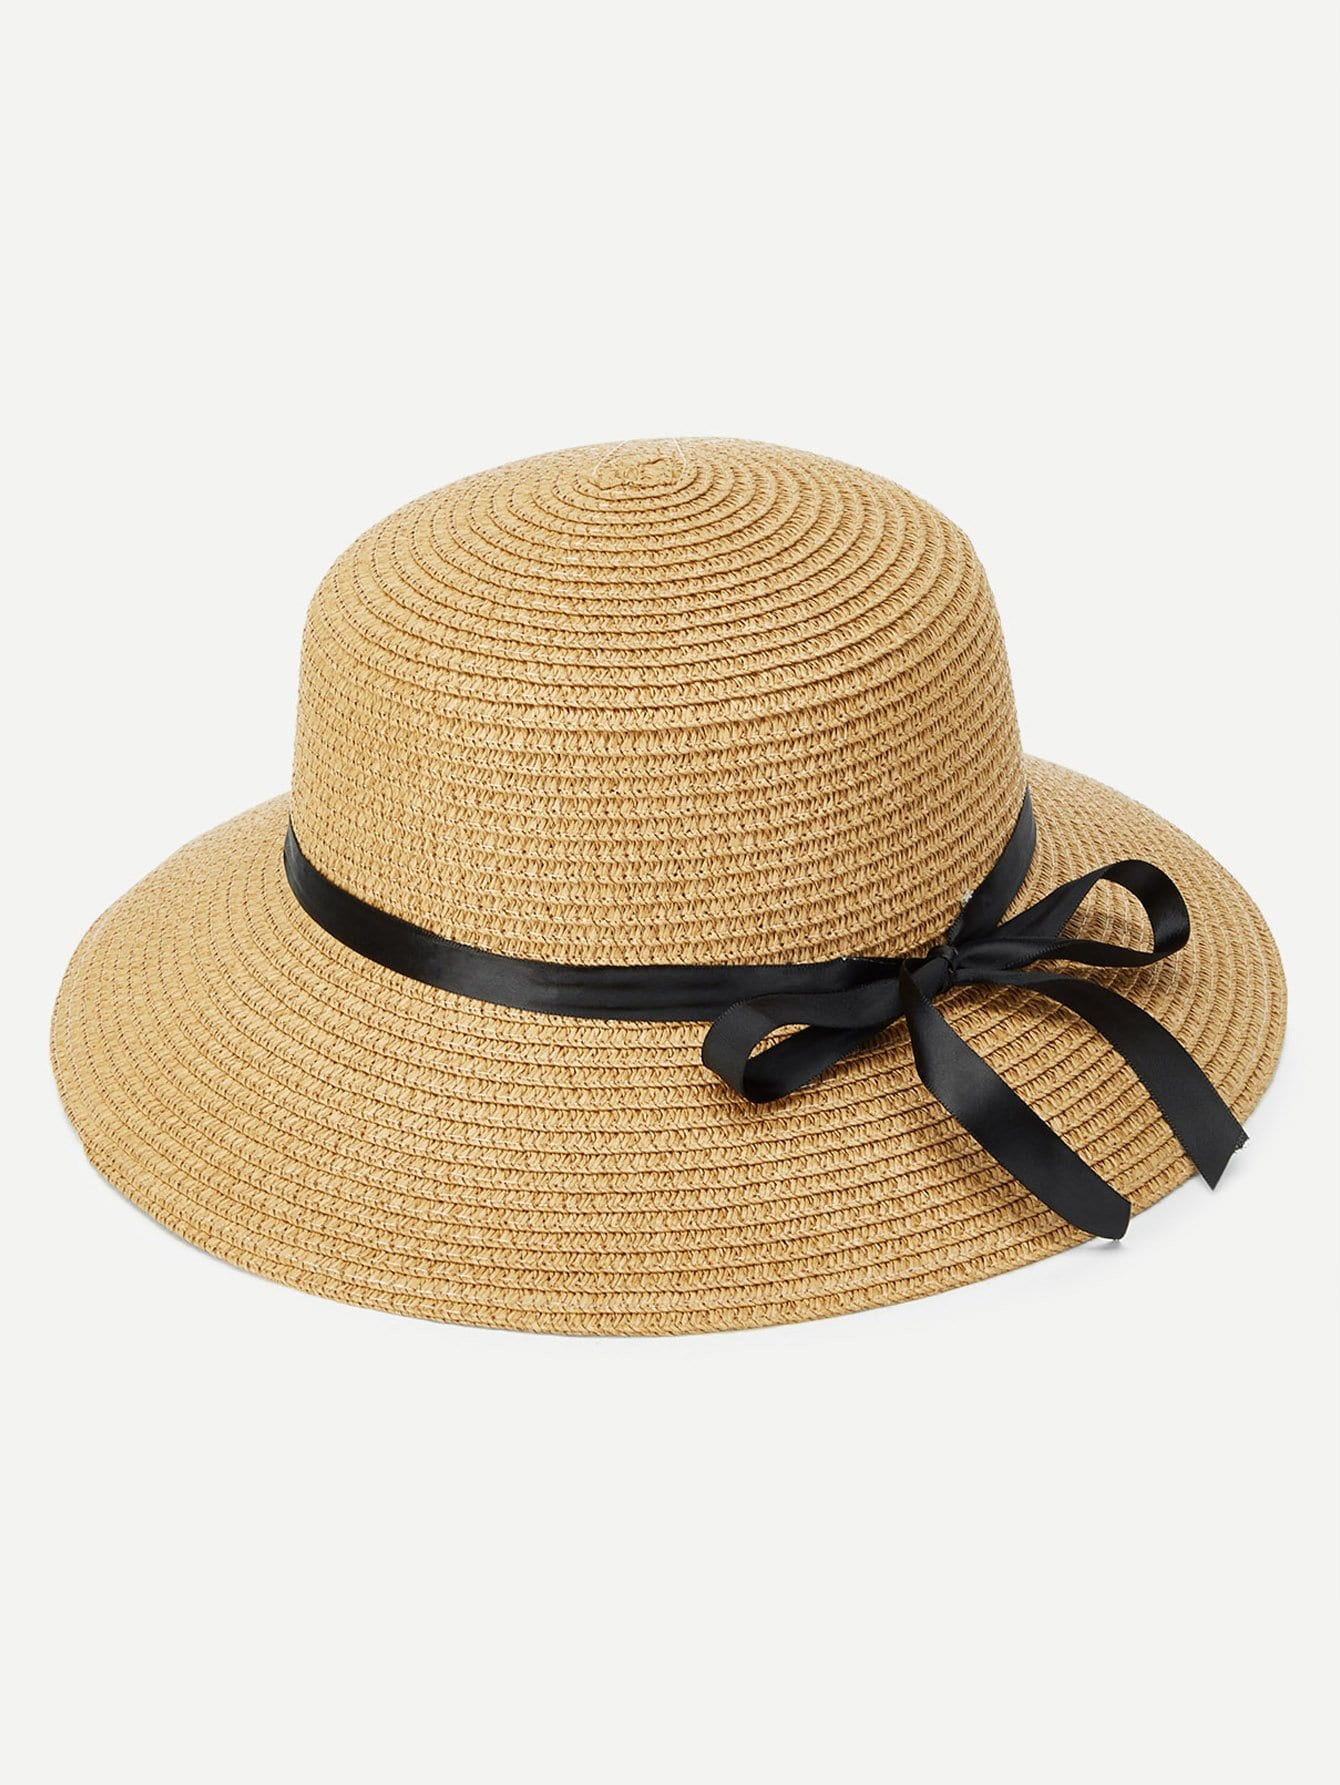 Ribbon Band Straw Hat stetson men s breakers premium shantung straw hat